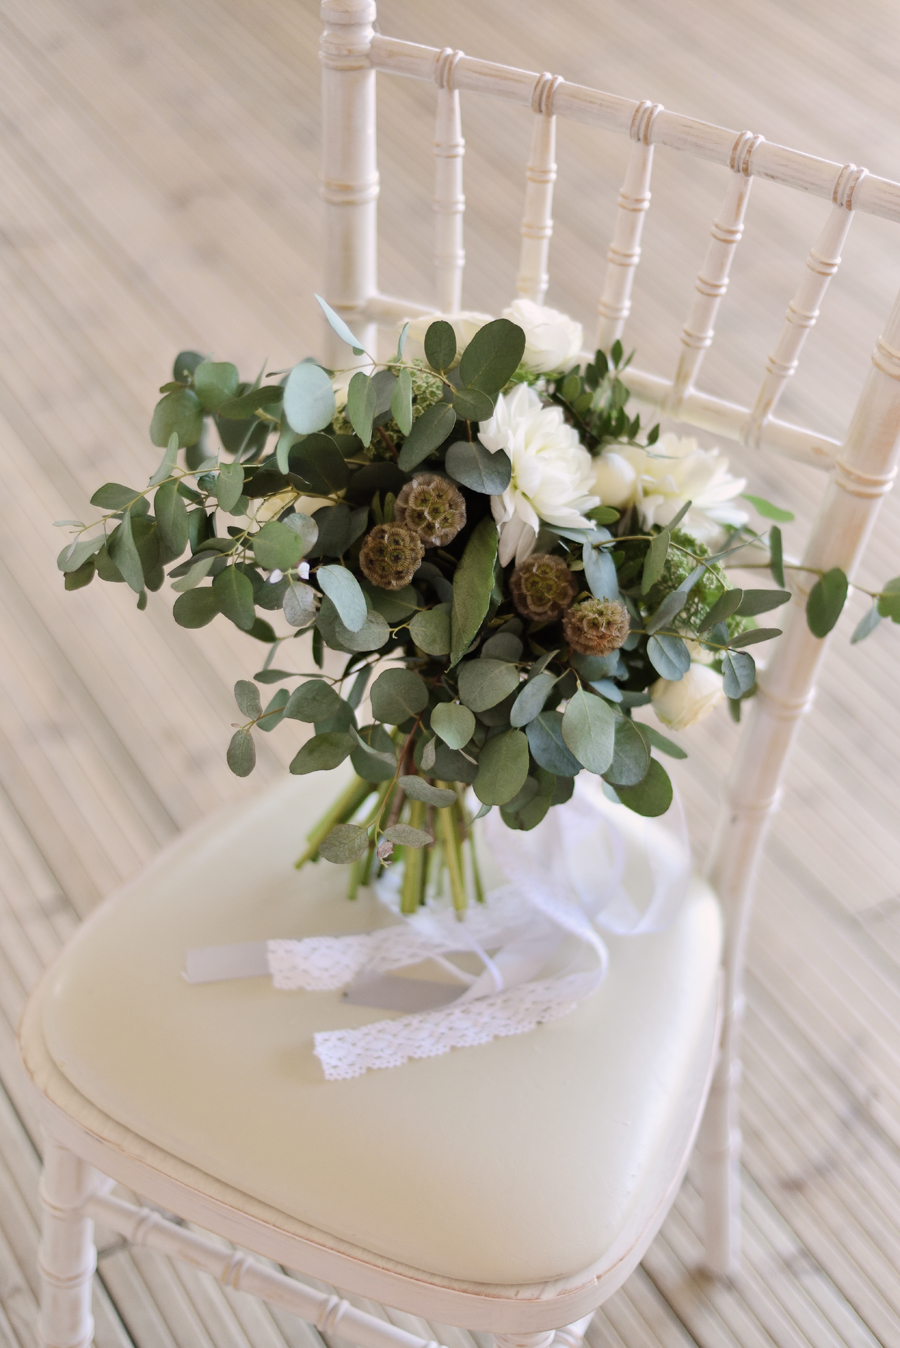 Marina Walker Photography's styled shoot with succulents and affordable details for a minimalist boho wedding (20)